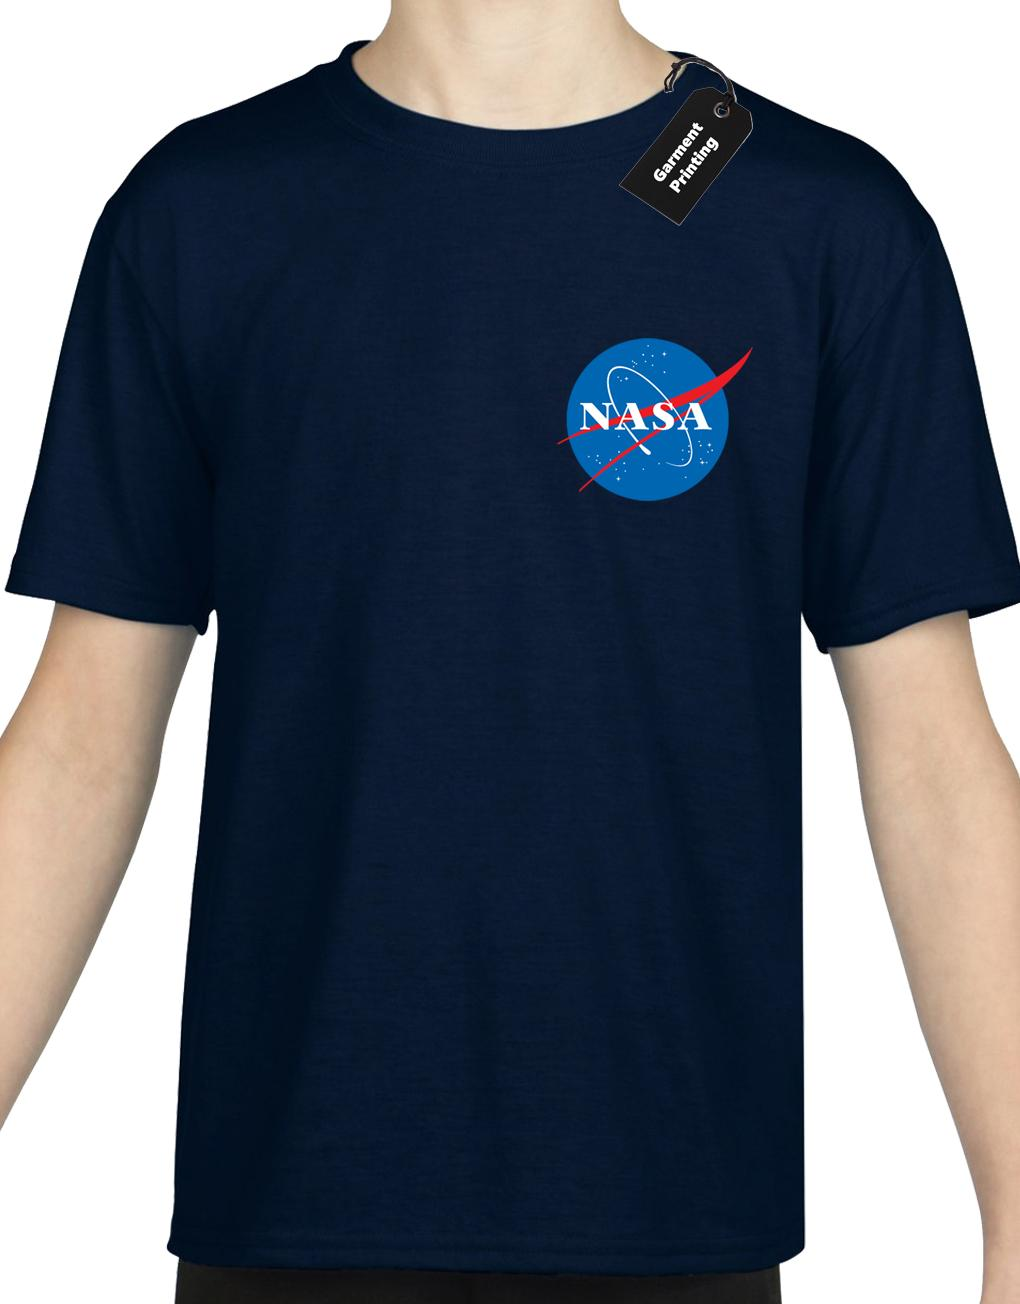 df27db49 NASA L/B SPACE ASTRONAUT KIDS T SHIRT BOYS GEEK NERD DESIGN RETRO LEGO  SPACEMAN And T Shirts As Tee Shirts From Notkillape, $11.42| DHgate.Com